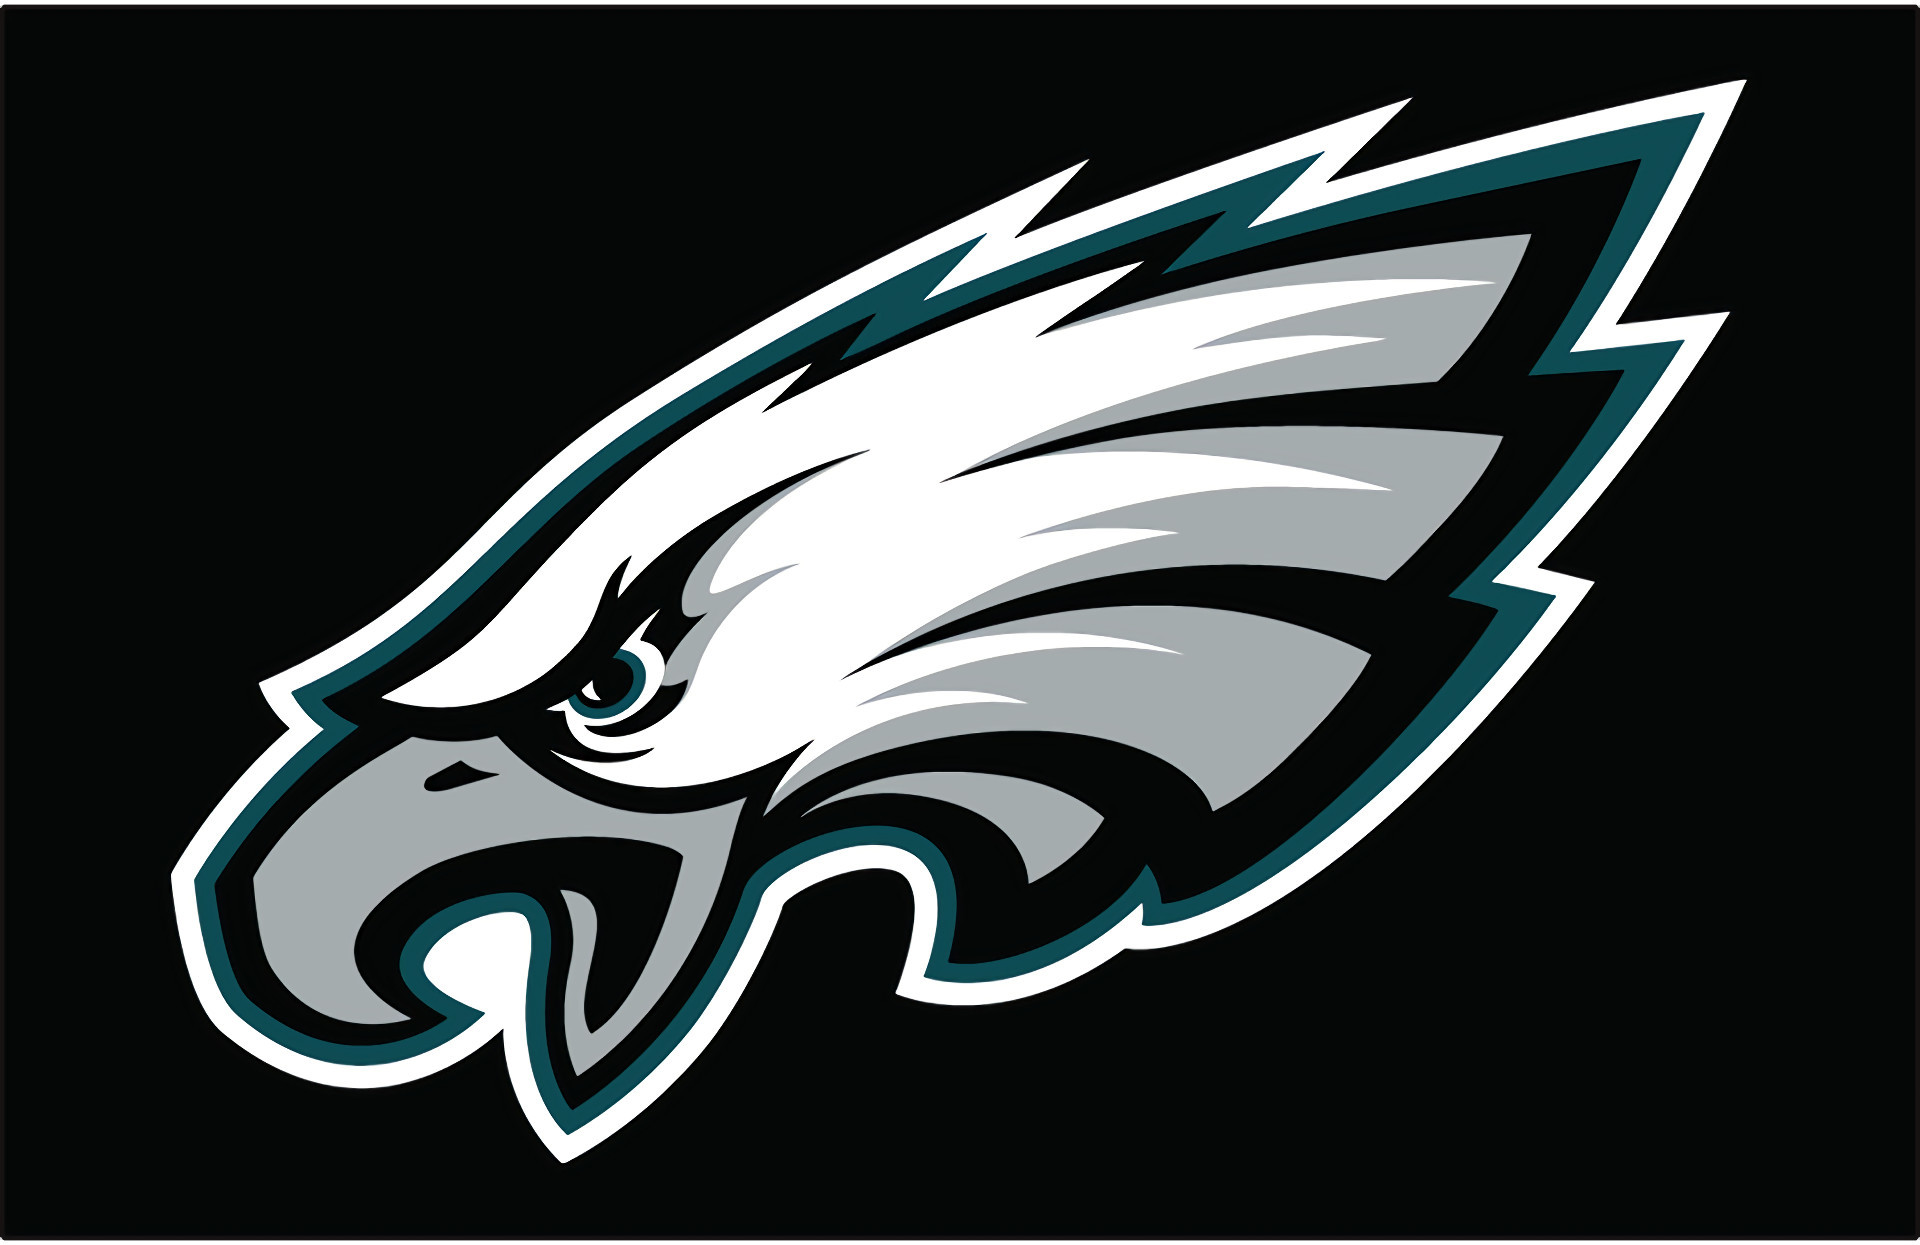 1920x1245 1920x1080 Philadelphia Eagles Wallpaper Hd Full For Iphone Pics Waraqh